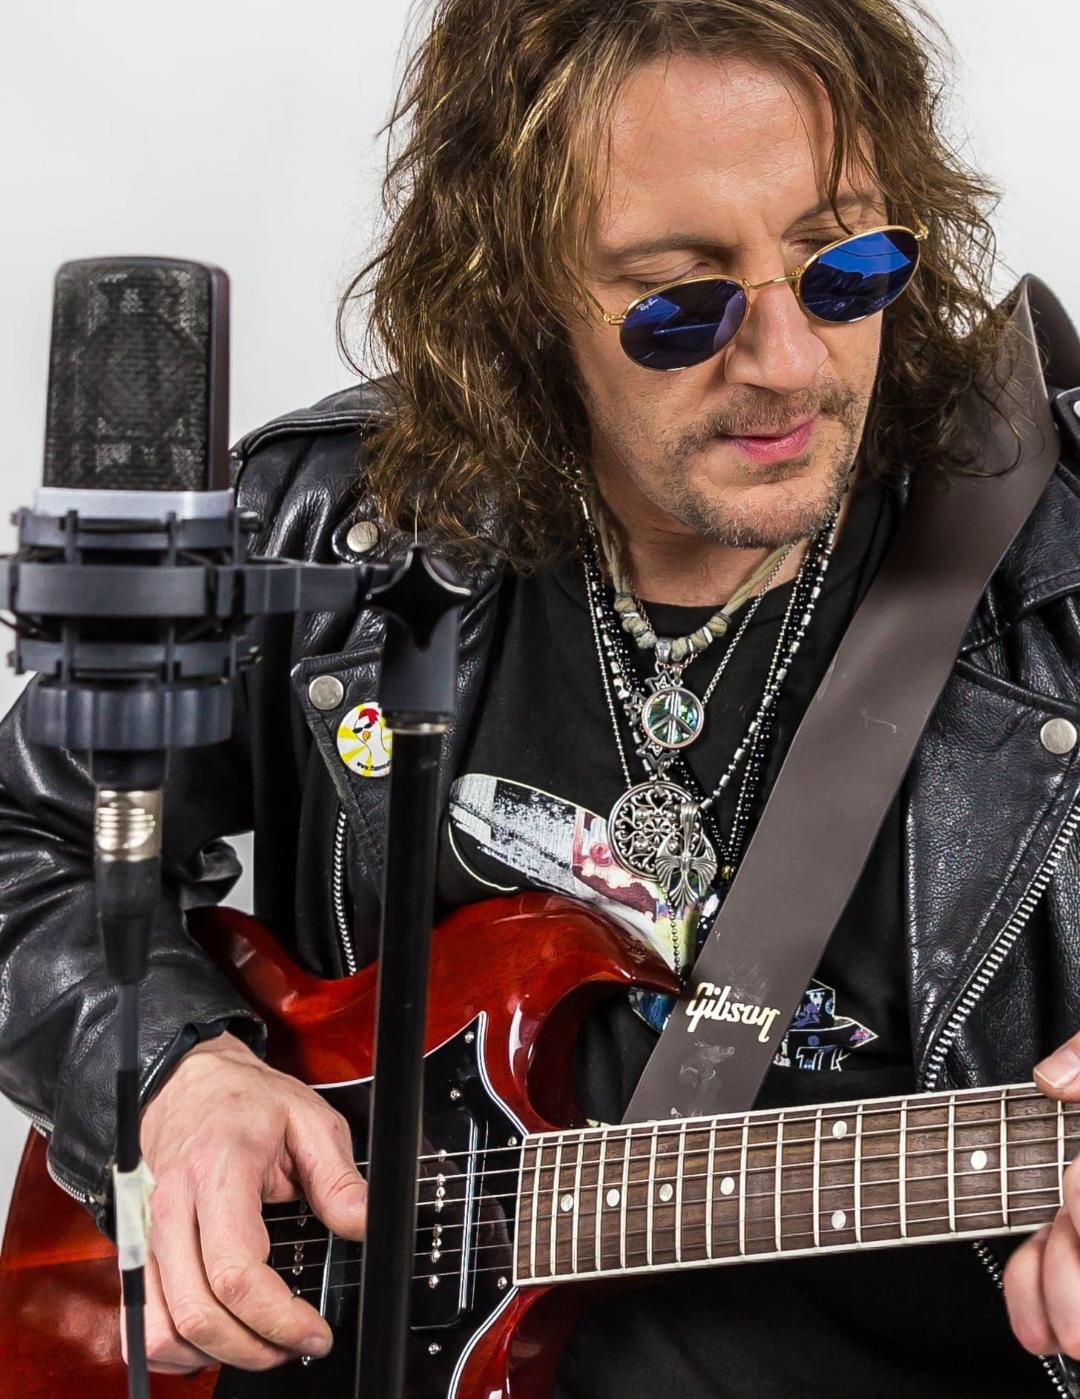 Donnie Vie discusses his upcoming new music.